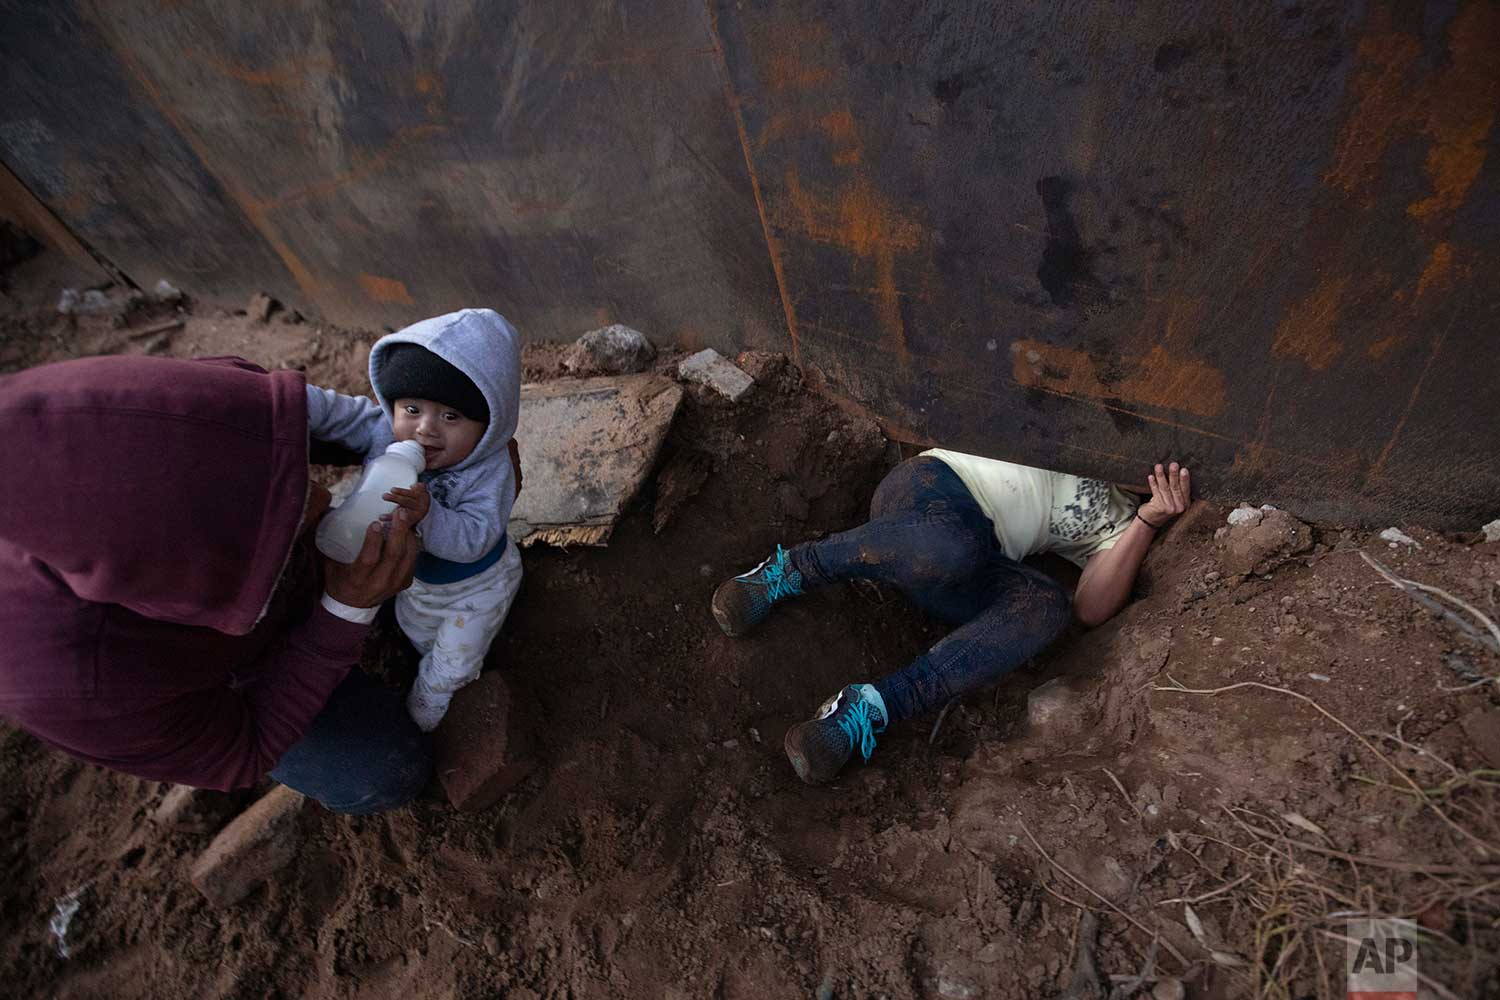 Honduran migrant Joel Mendez, 22, feeds his eight-month-old son Daniel as his partner Yesenia Martinez, 24, crawls through a hole under the U.S. border wall, in Tijuana, Mexico, Friday, Dec. 7, 2018. Moments later Martinez, carrying her son, surrendered to waiting border guards. Mendez stayed behind in Tijuana to work, saying he feared he'd be deported if he crossed. This image won the News Photography Single Shot category in the 2019 Associated Press Media Editors Awards. (AP Photo/Rebecca Blackwell)